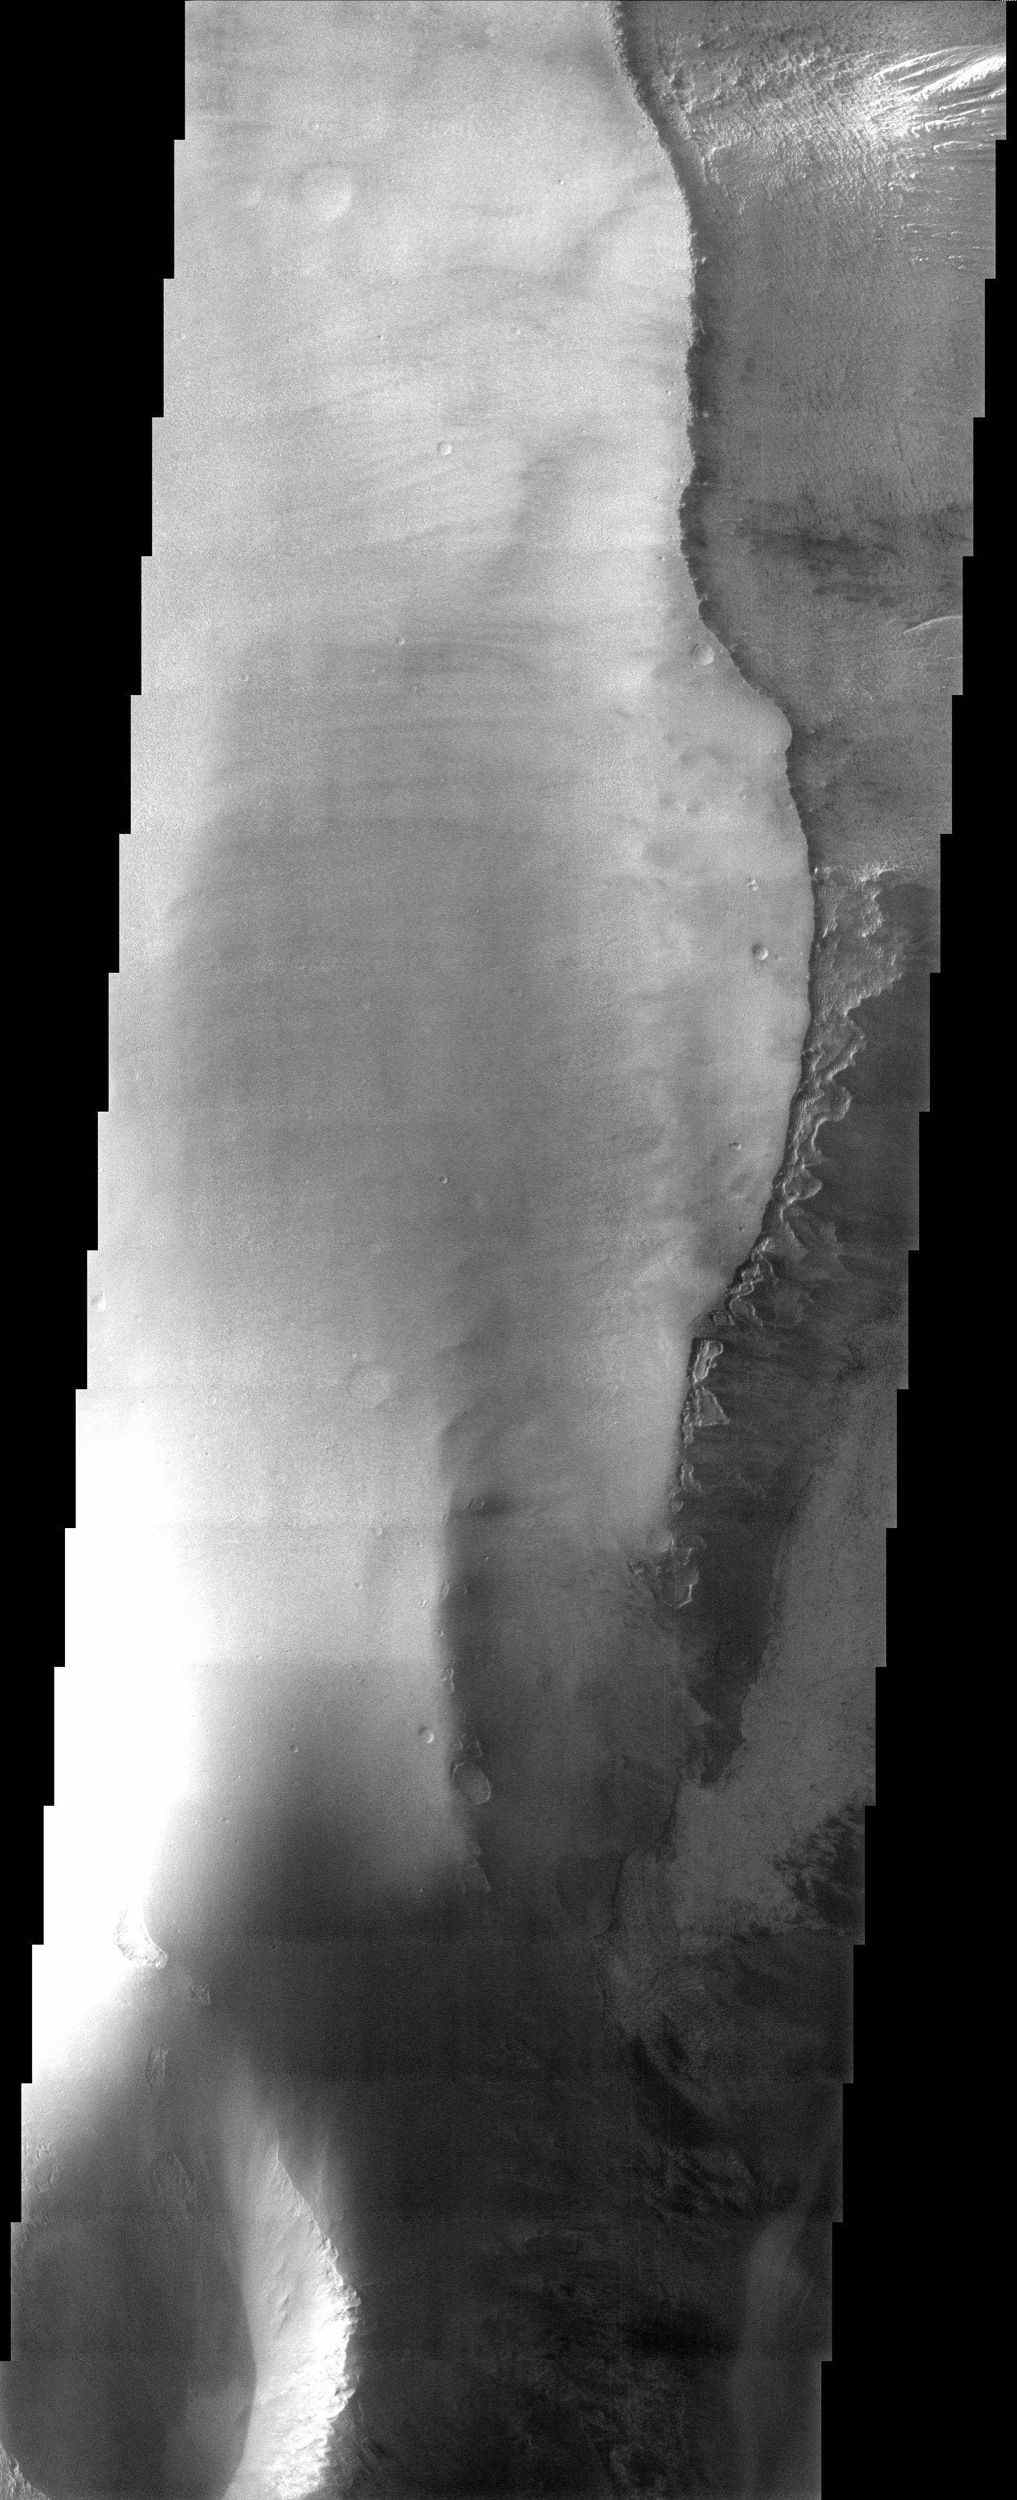 In this image from NASA's Mars Odyssey, a mantling layer of sediment slumps off the edge of a mesa in Candor Chasma producing a ragged pattern of erosion that hints at the presence of a volatile component mixed in with the sediment.